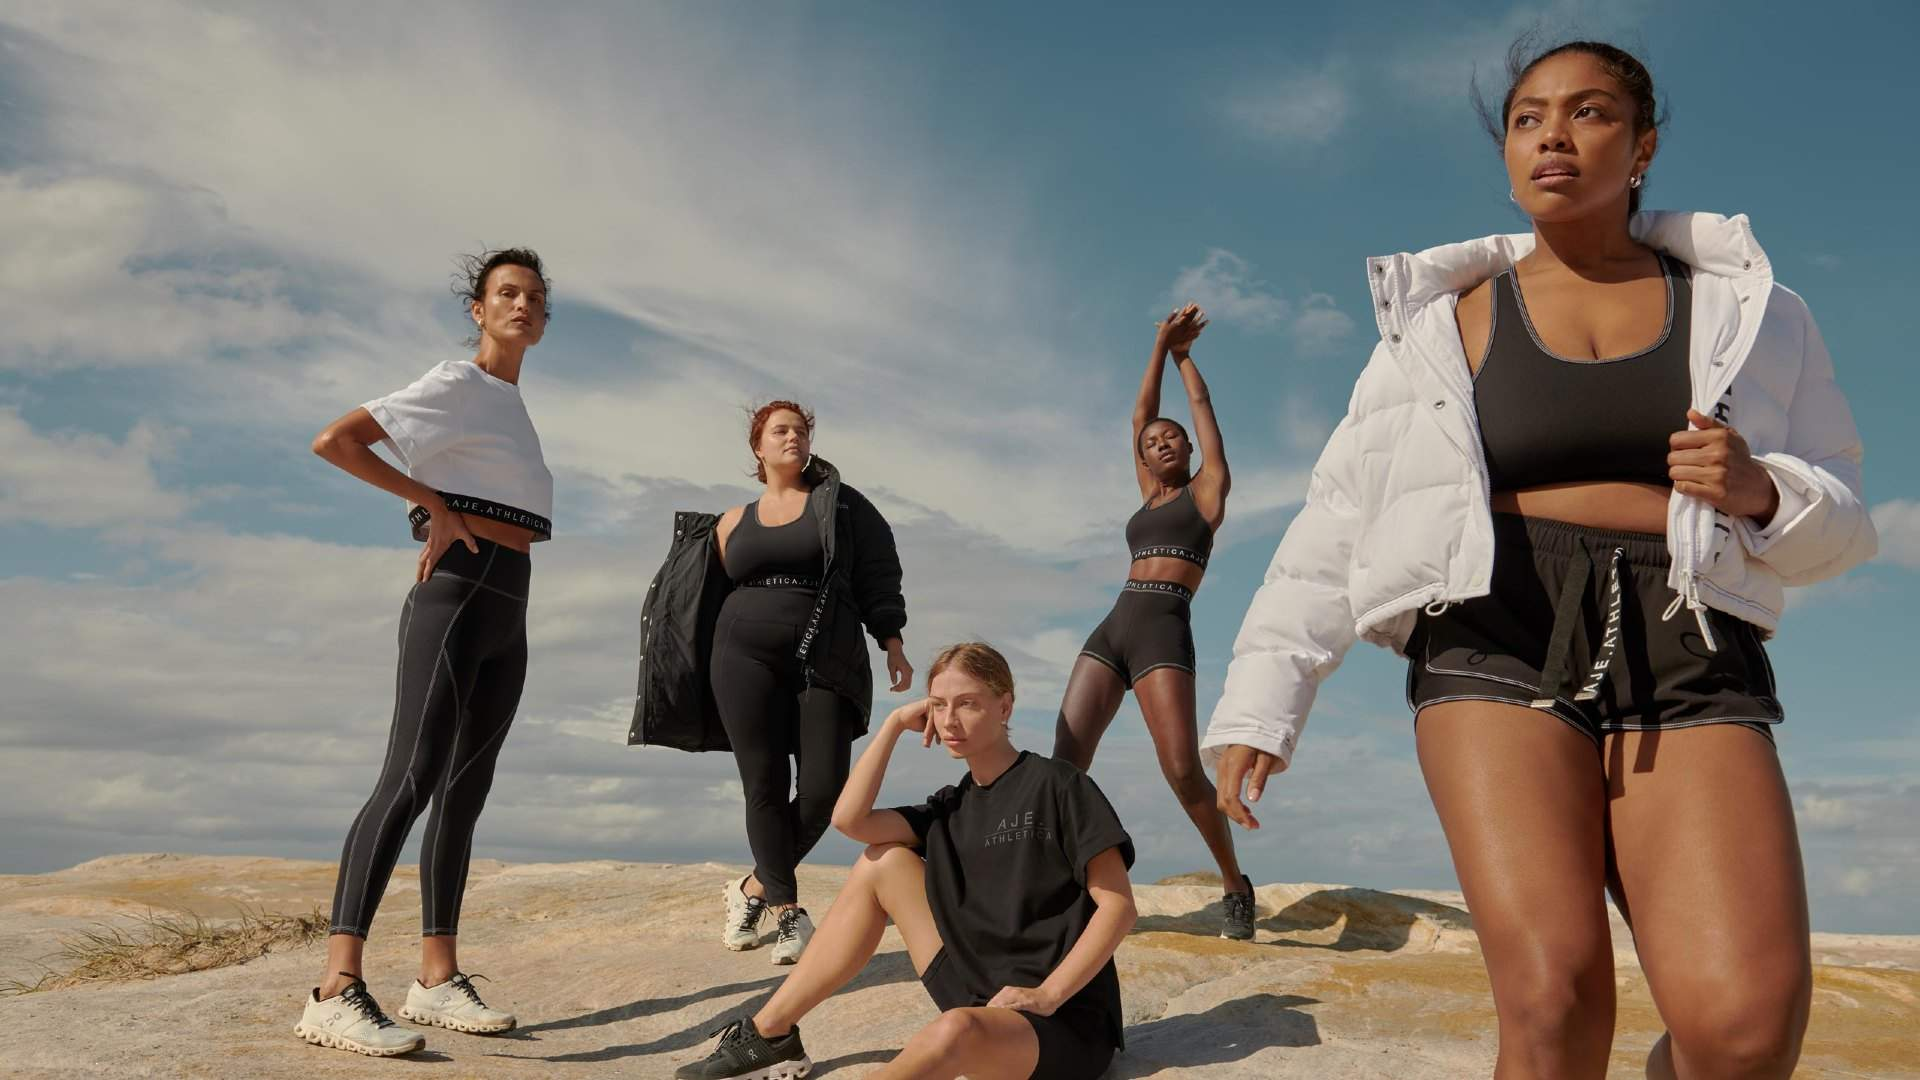 Australian Fashion House Aje Has Launched Sustainable Activewear Brand Aje Atheltica